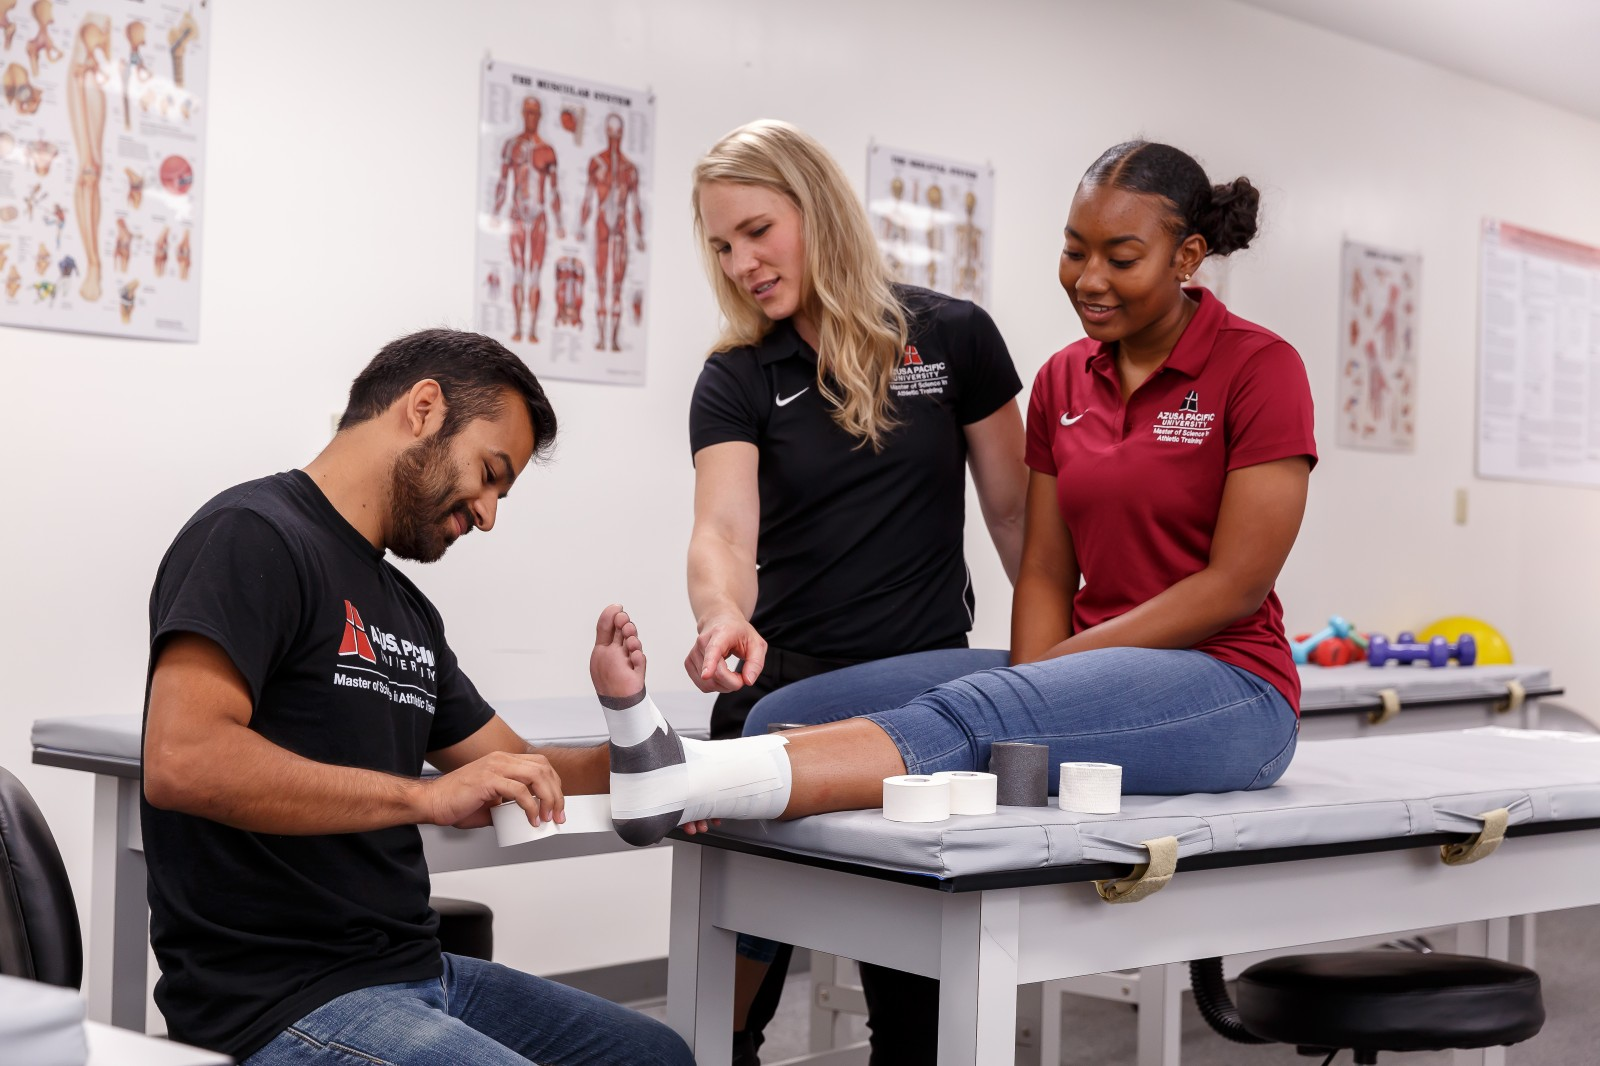 The Department of Kinesiology equips students who are academically engaged, relationally centered, vocationally aware, and wellness oriented using approaches that are discipline based and grounded in a Christian worldview.